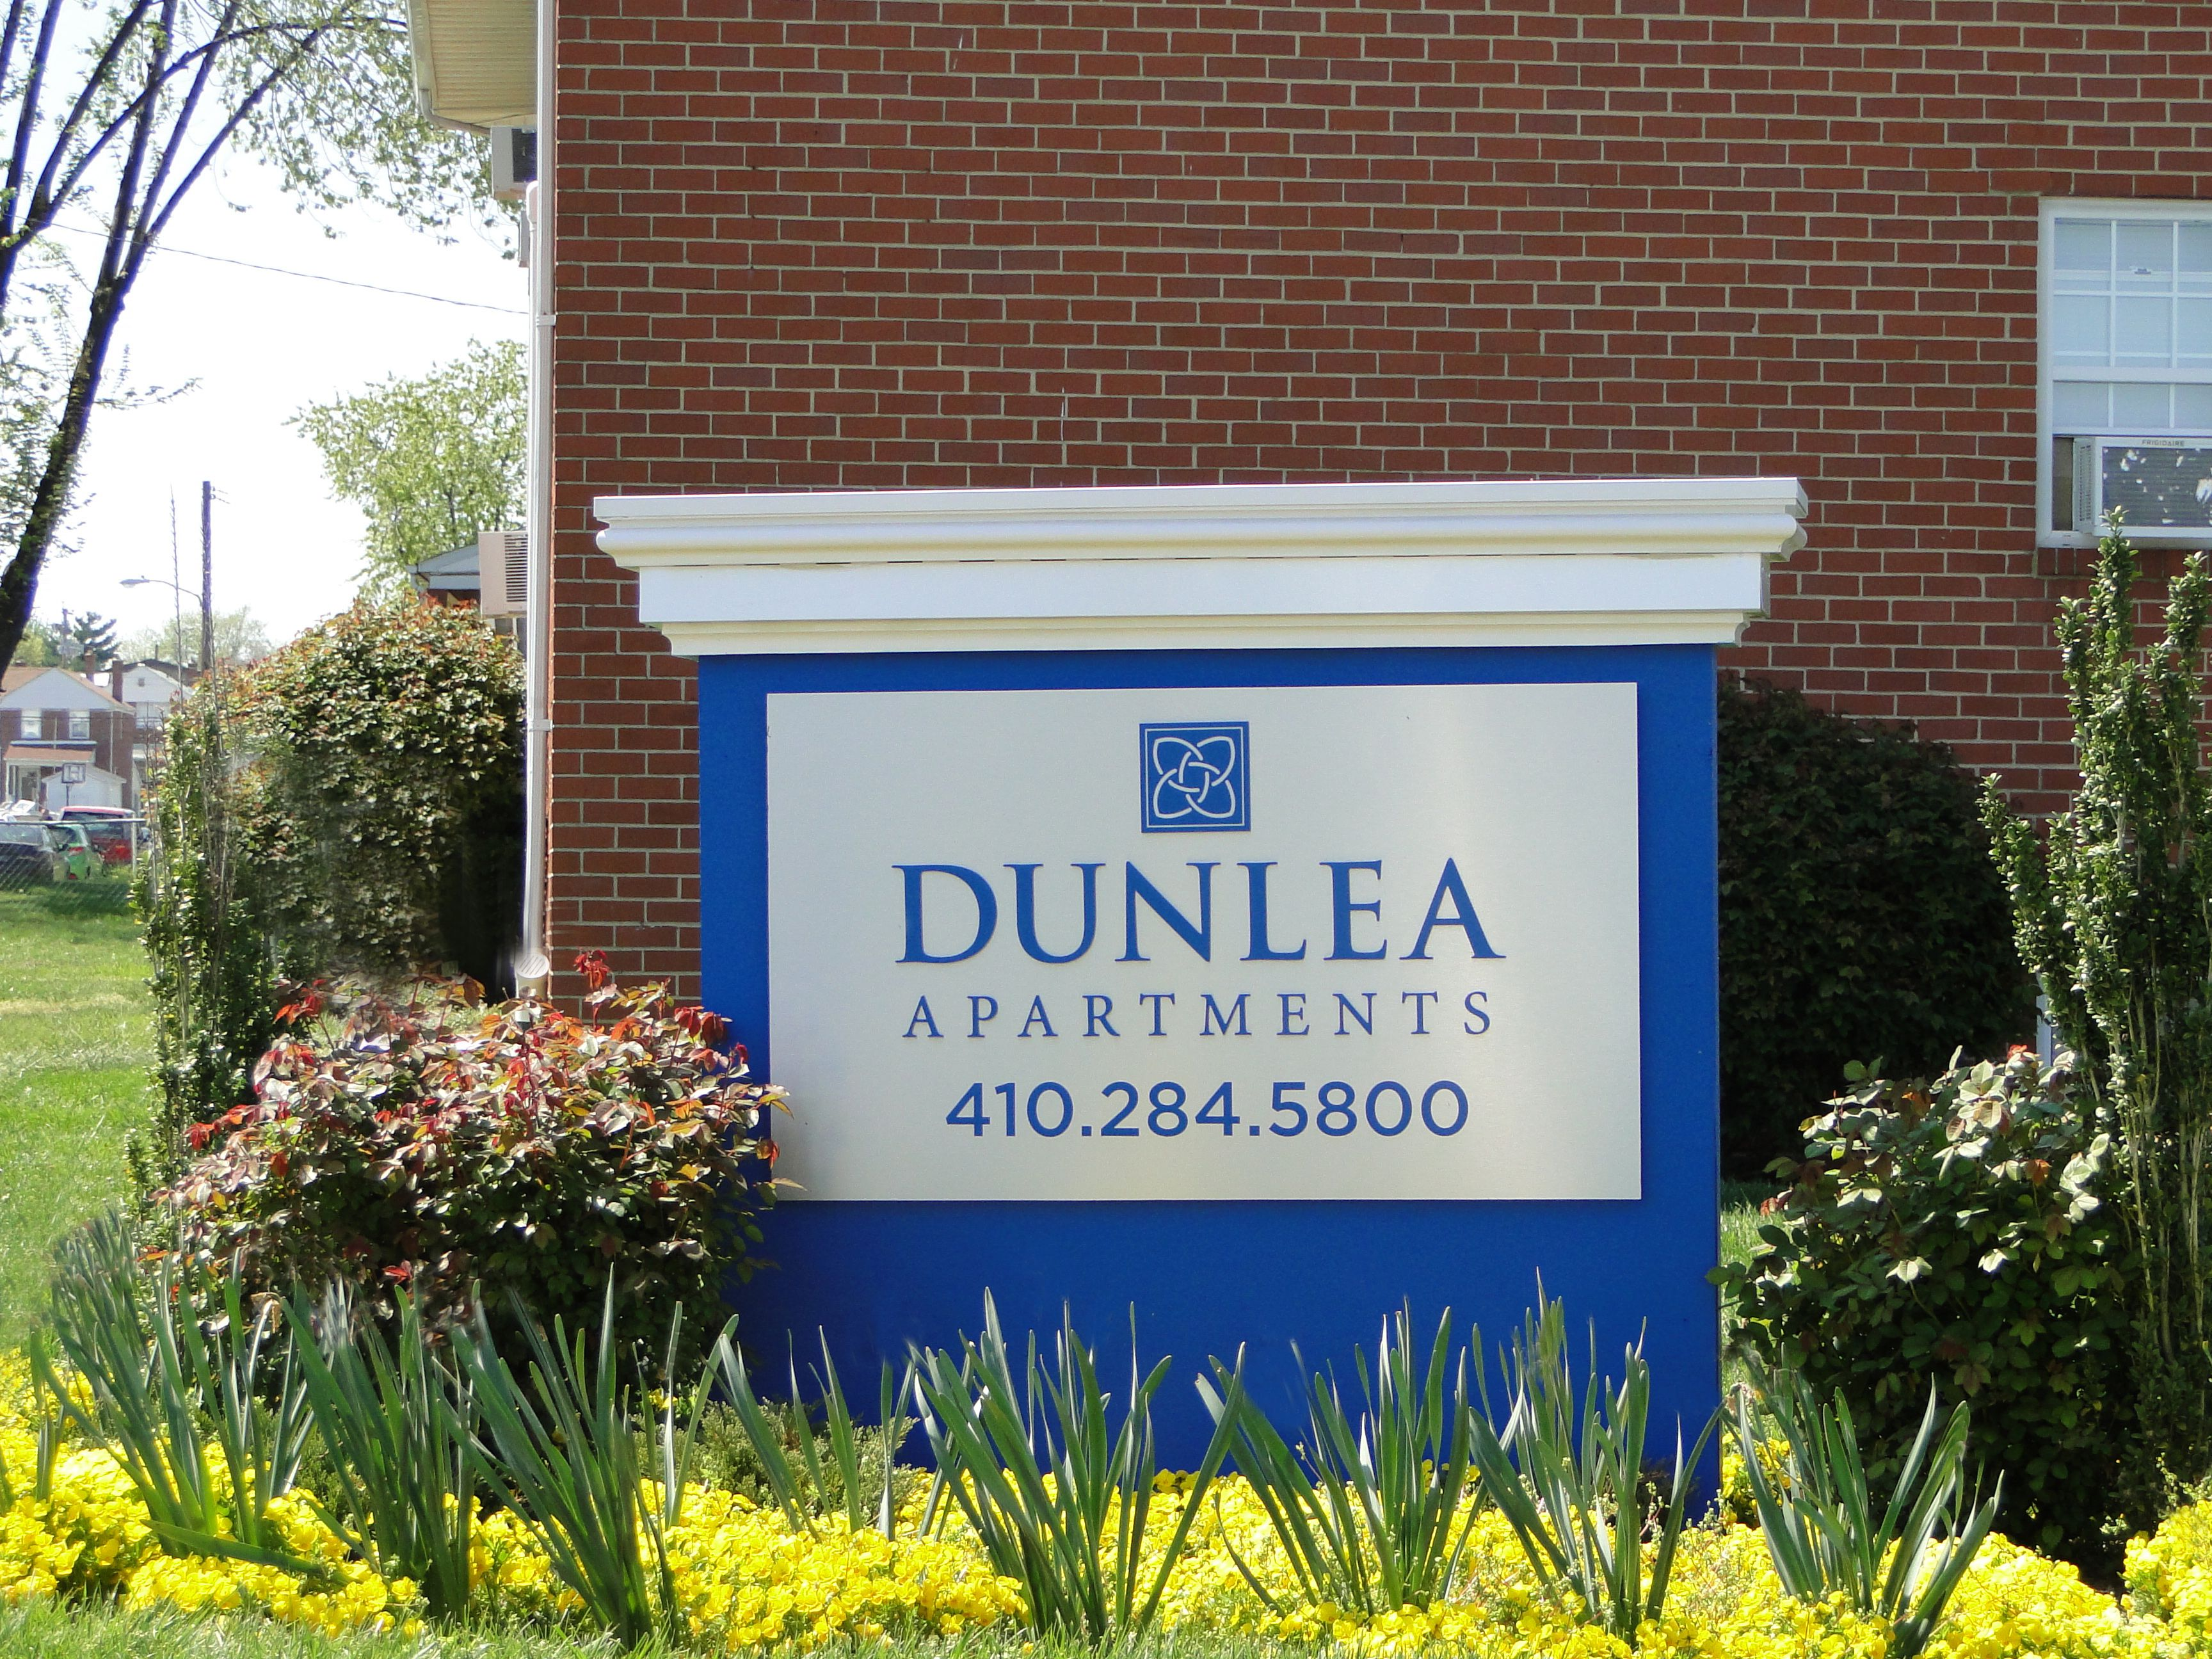 home to Dunlea Apartments! Affordable apartment